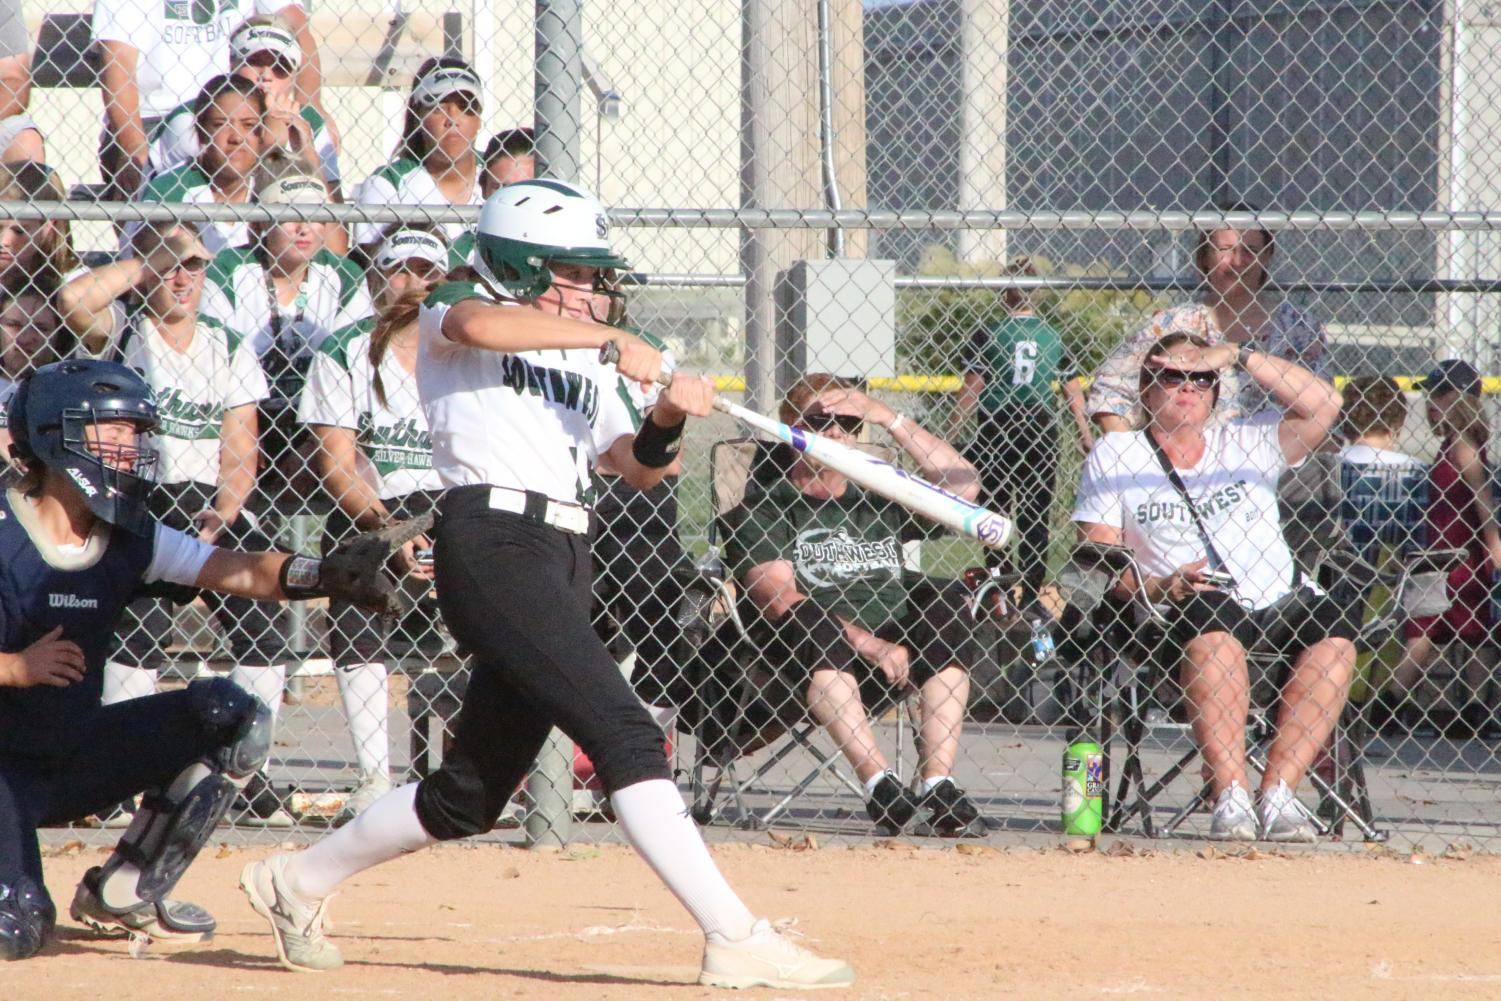 Sophomore Josie Solano bats against Lincoln North Star on Sept. 19 at Doris Bair Softball Complex.